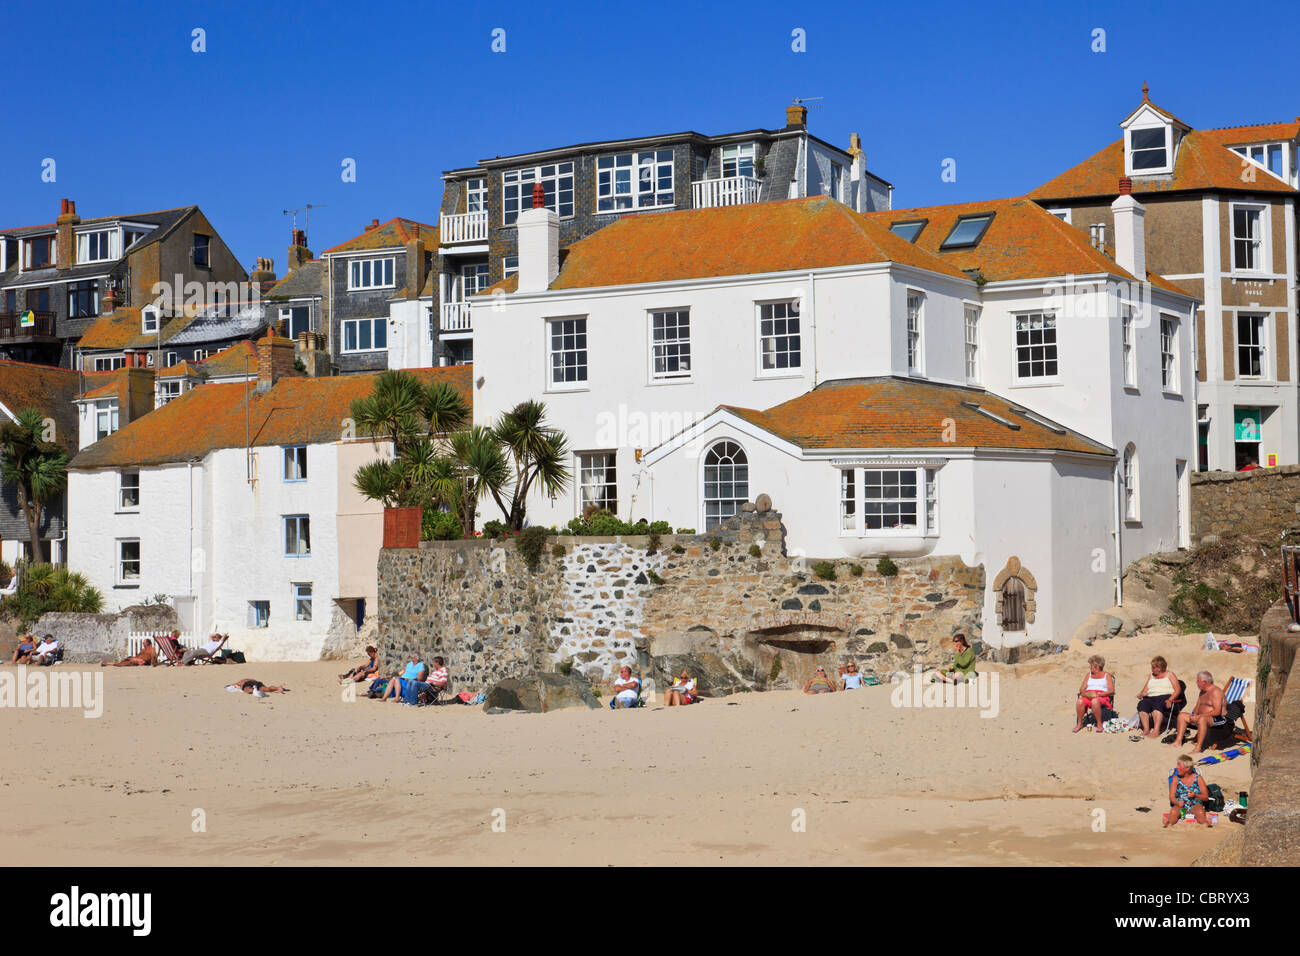 St Ives, Cornwall, England, UK. Traditional white buildings on seafront with people sitting on the sandy beach Stock Photo